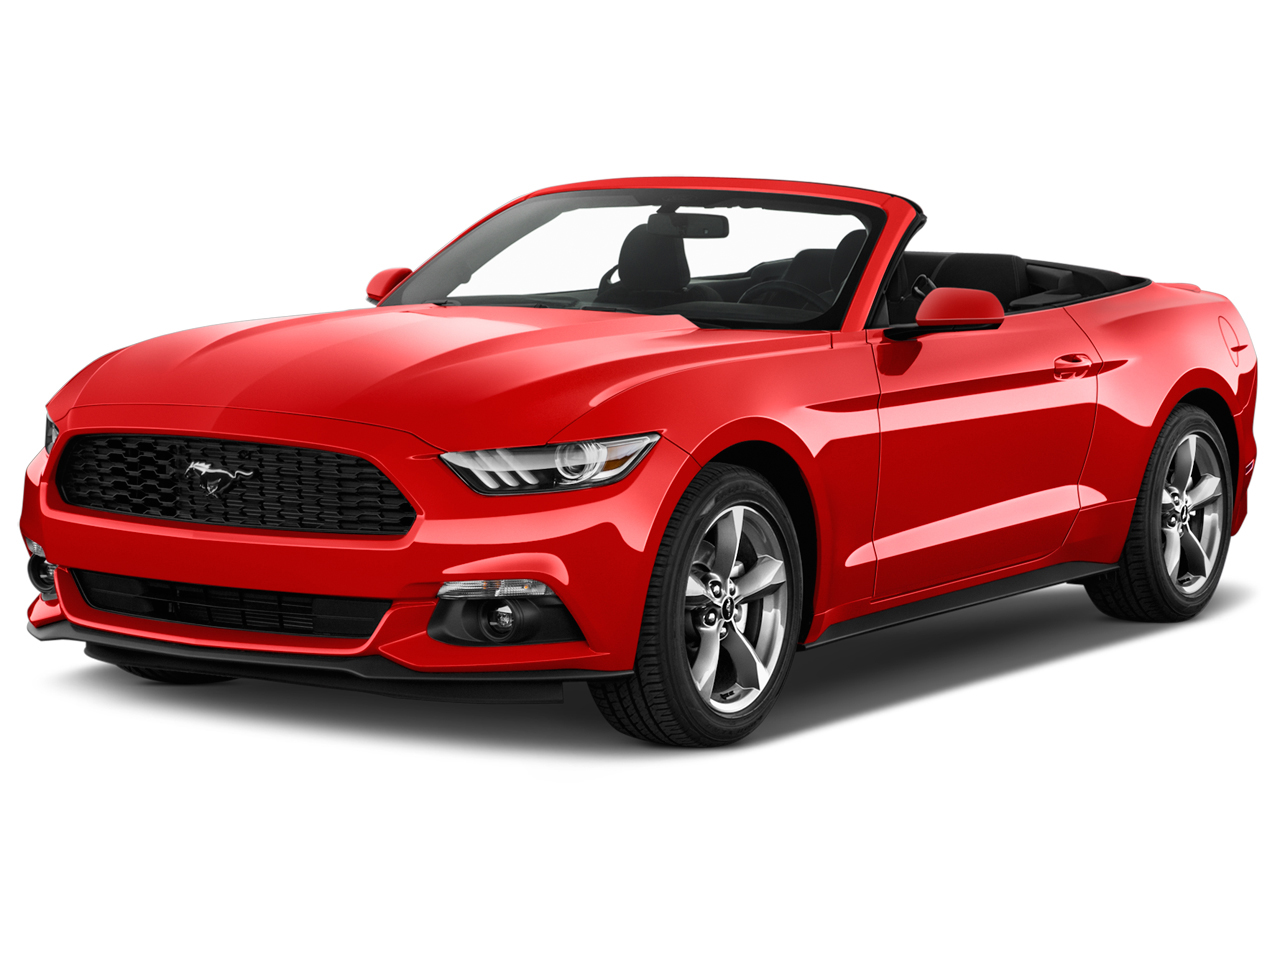 2017 Ford Mustang Gas Mileage The Car Connection